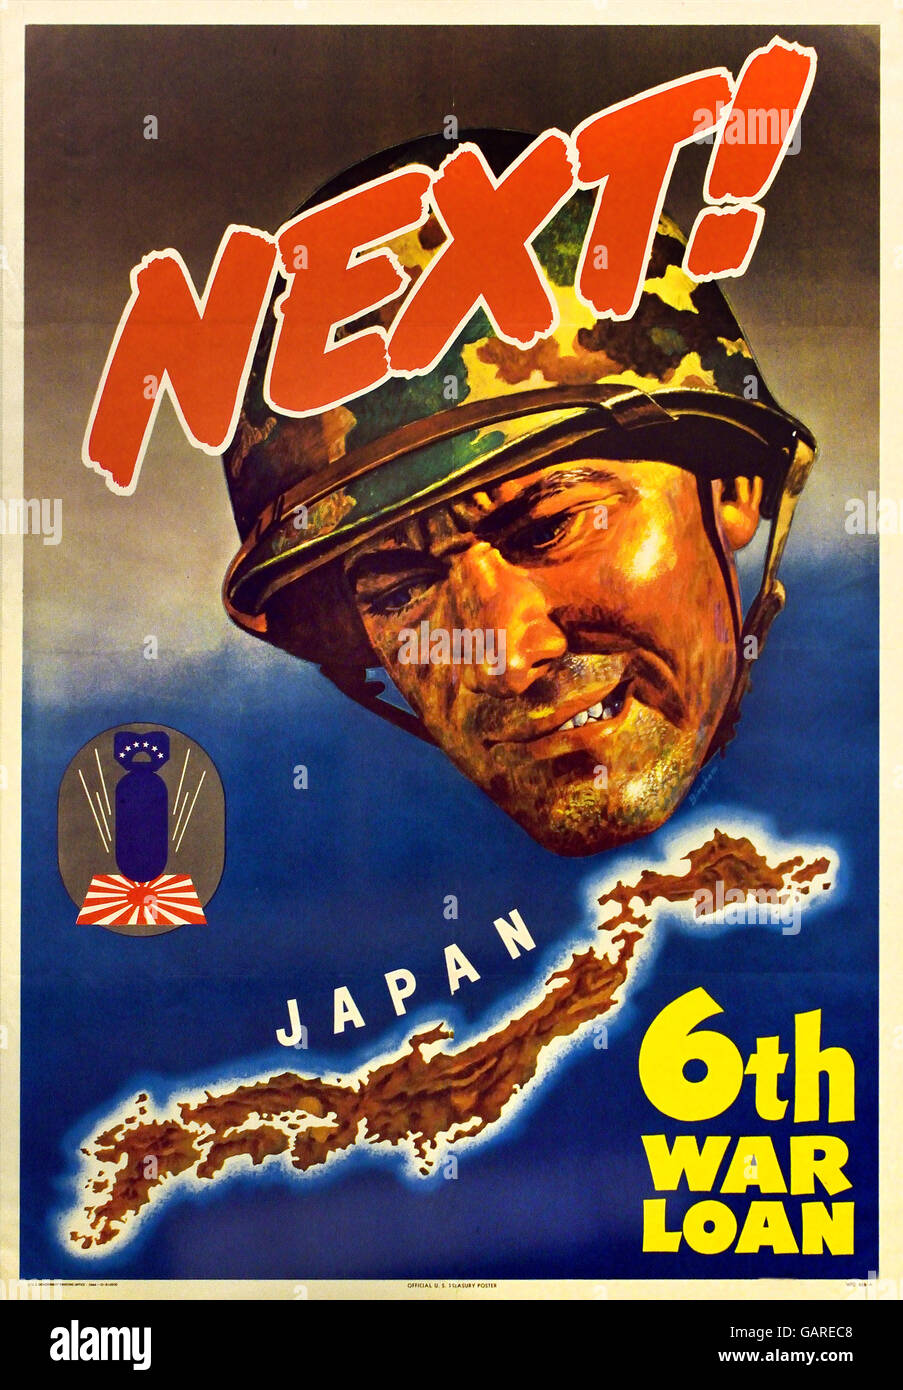 Next Japan 6th War Loan Second World War 2  1940-1945 United states of America USA poster billboard US Army - Stock Image